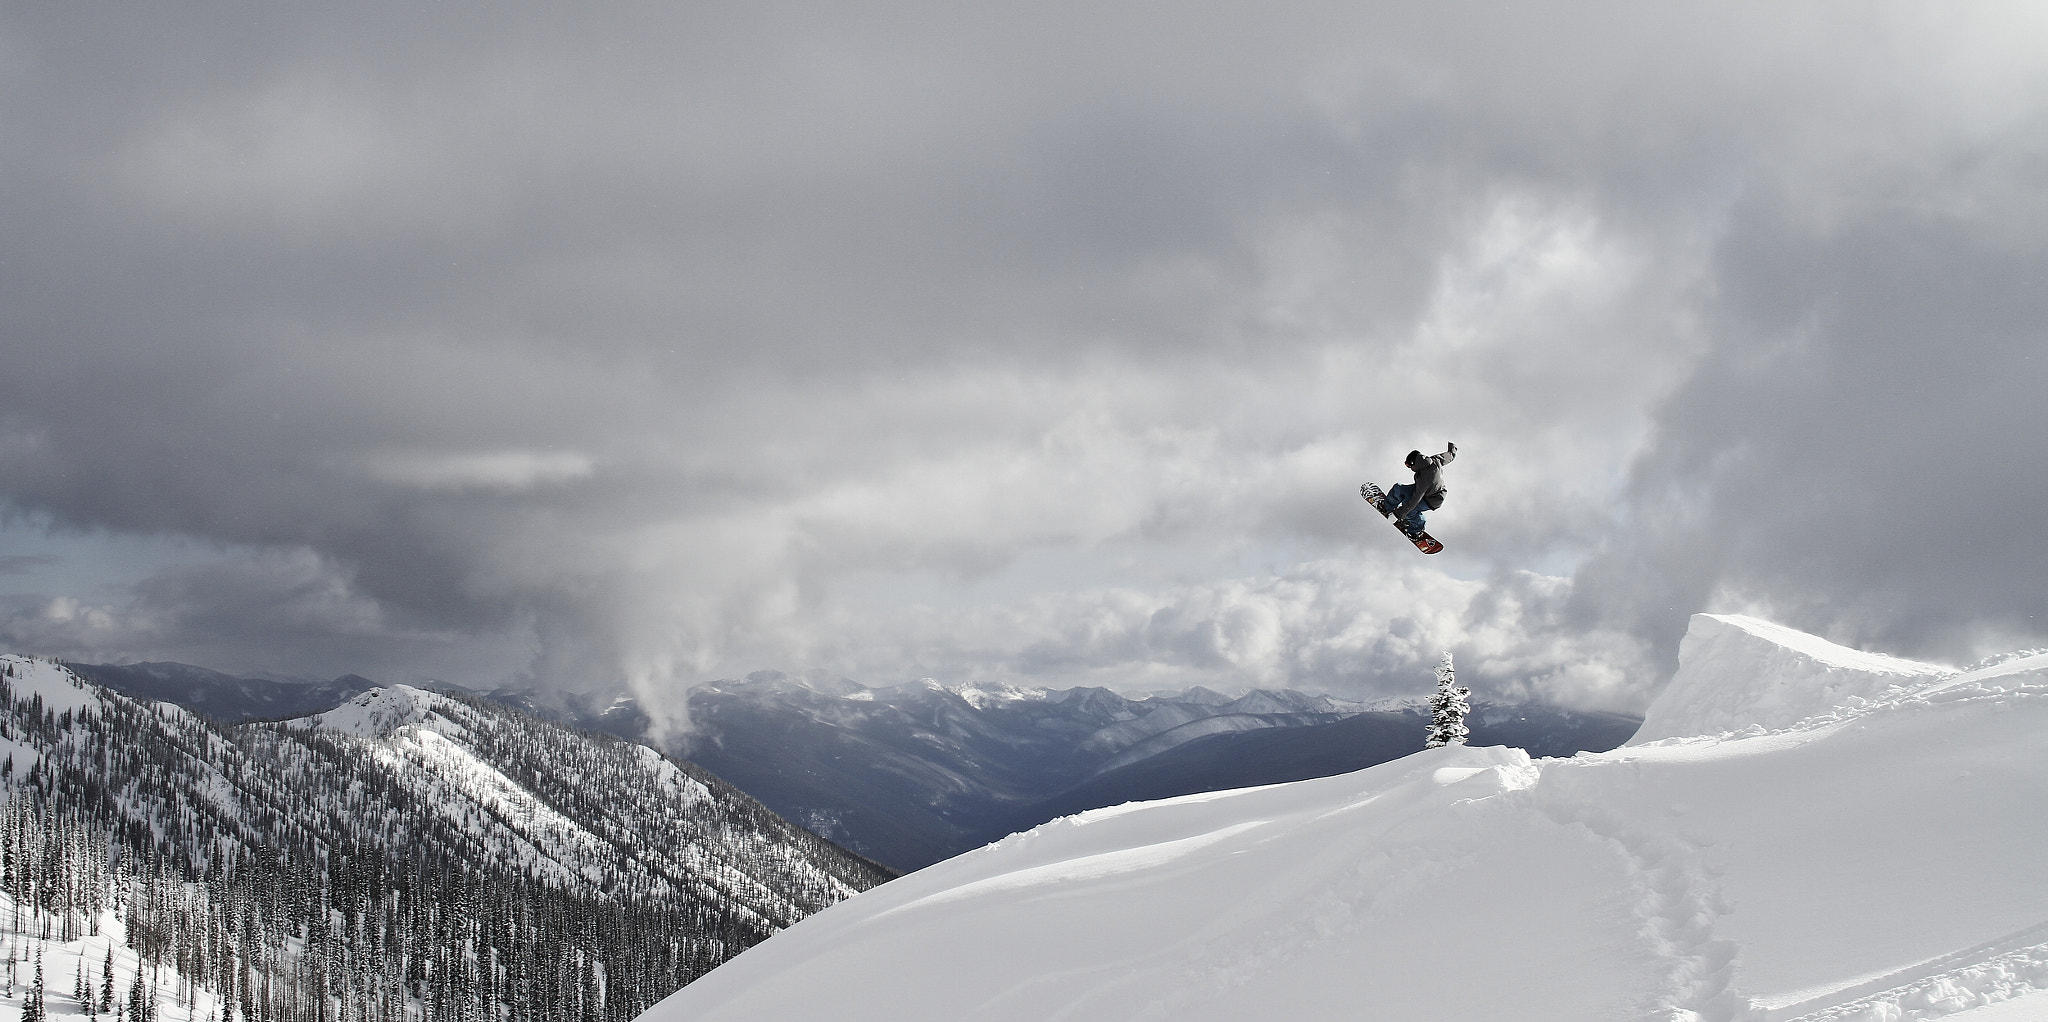 Photograph Backcountry Booter by Rob Antill on 500px